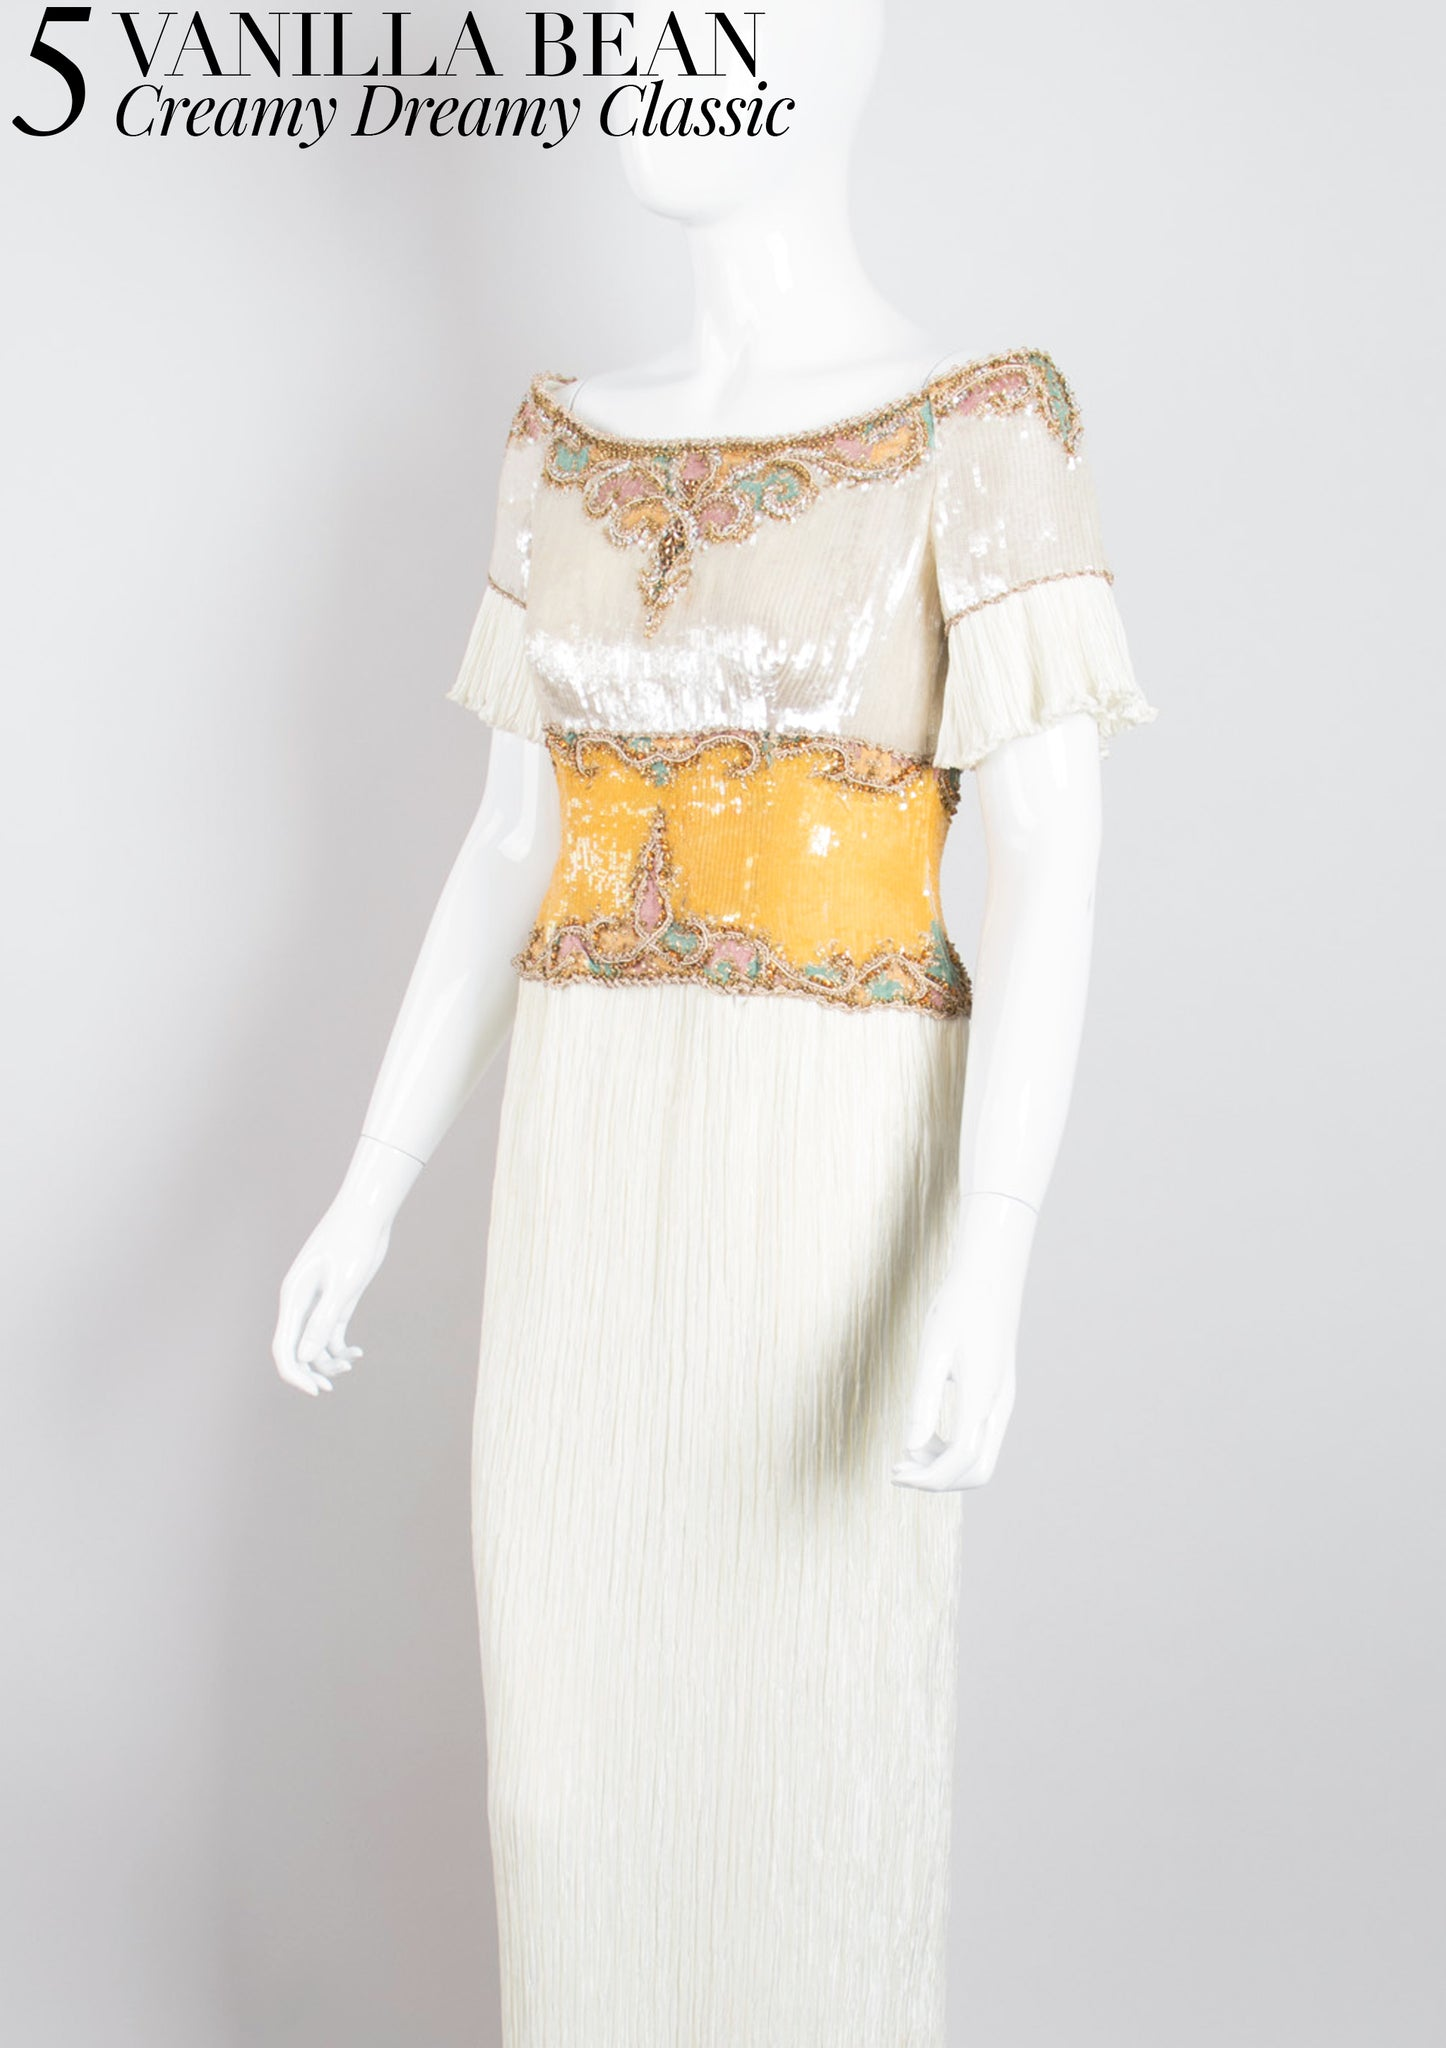 RECESS Los Angeles Vintage Dress Code Ice Cream Dream Mary McFadden Vanilla Bean Cream Classic GoT Pleated Wedding Gown